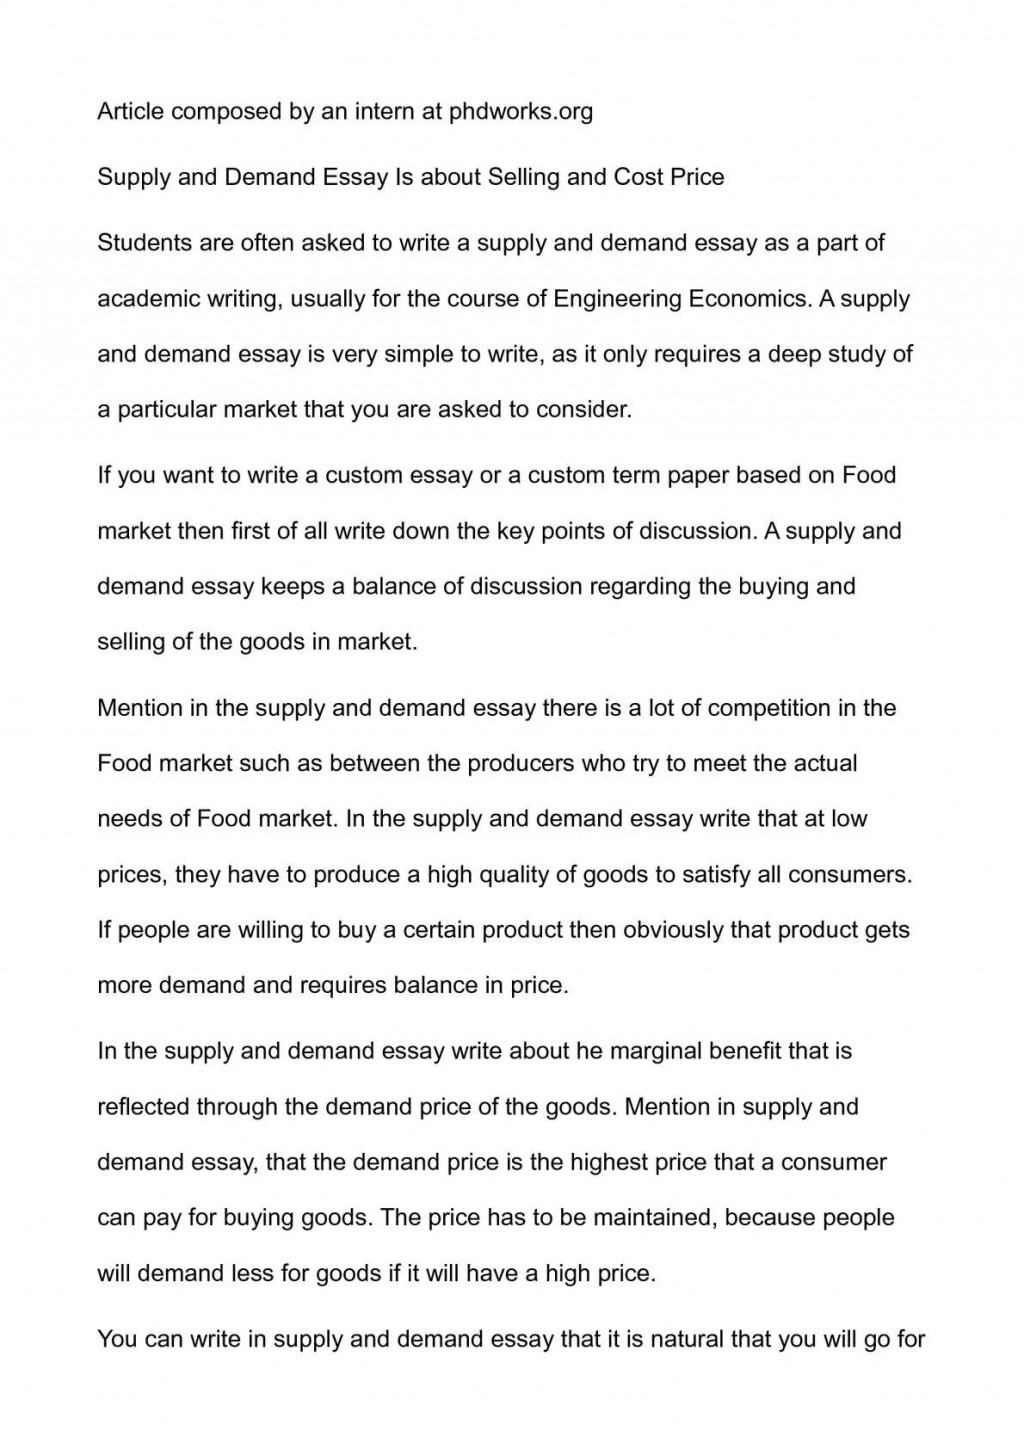 001 Essay Supply P1 Shocking Essaysupply Sign Up Sample On And Demand Chain Management Conclusion Large